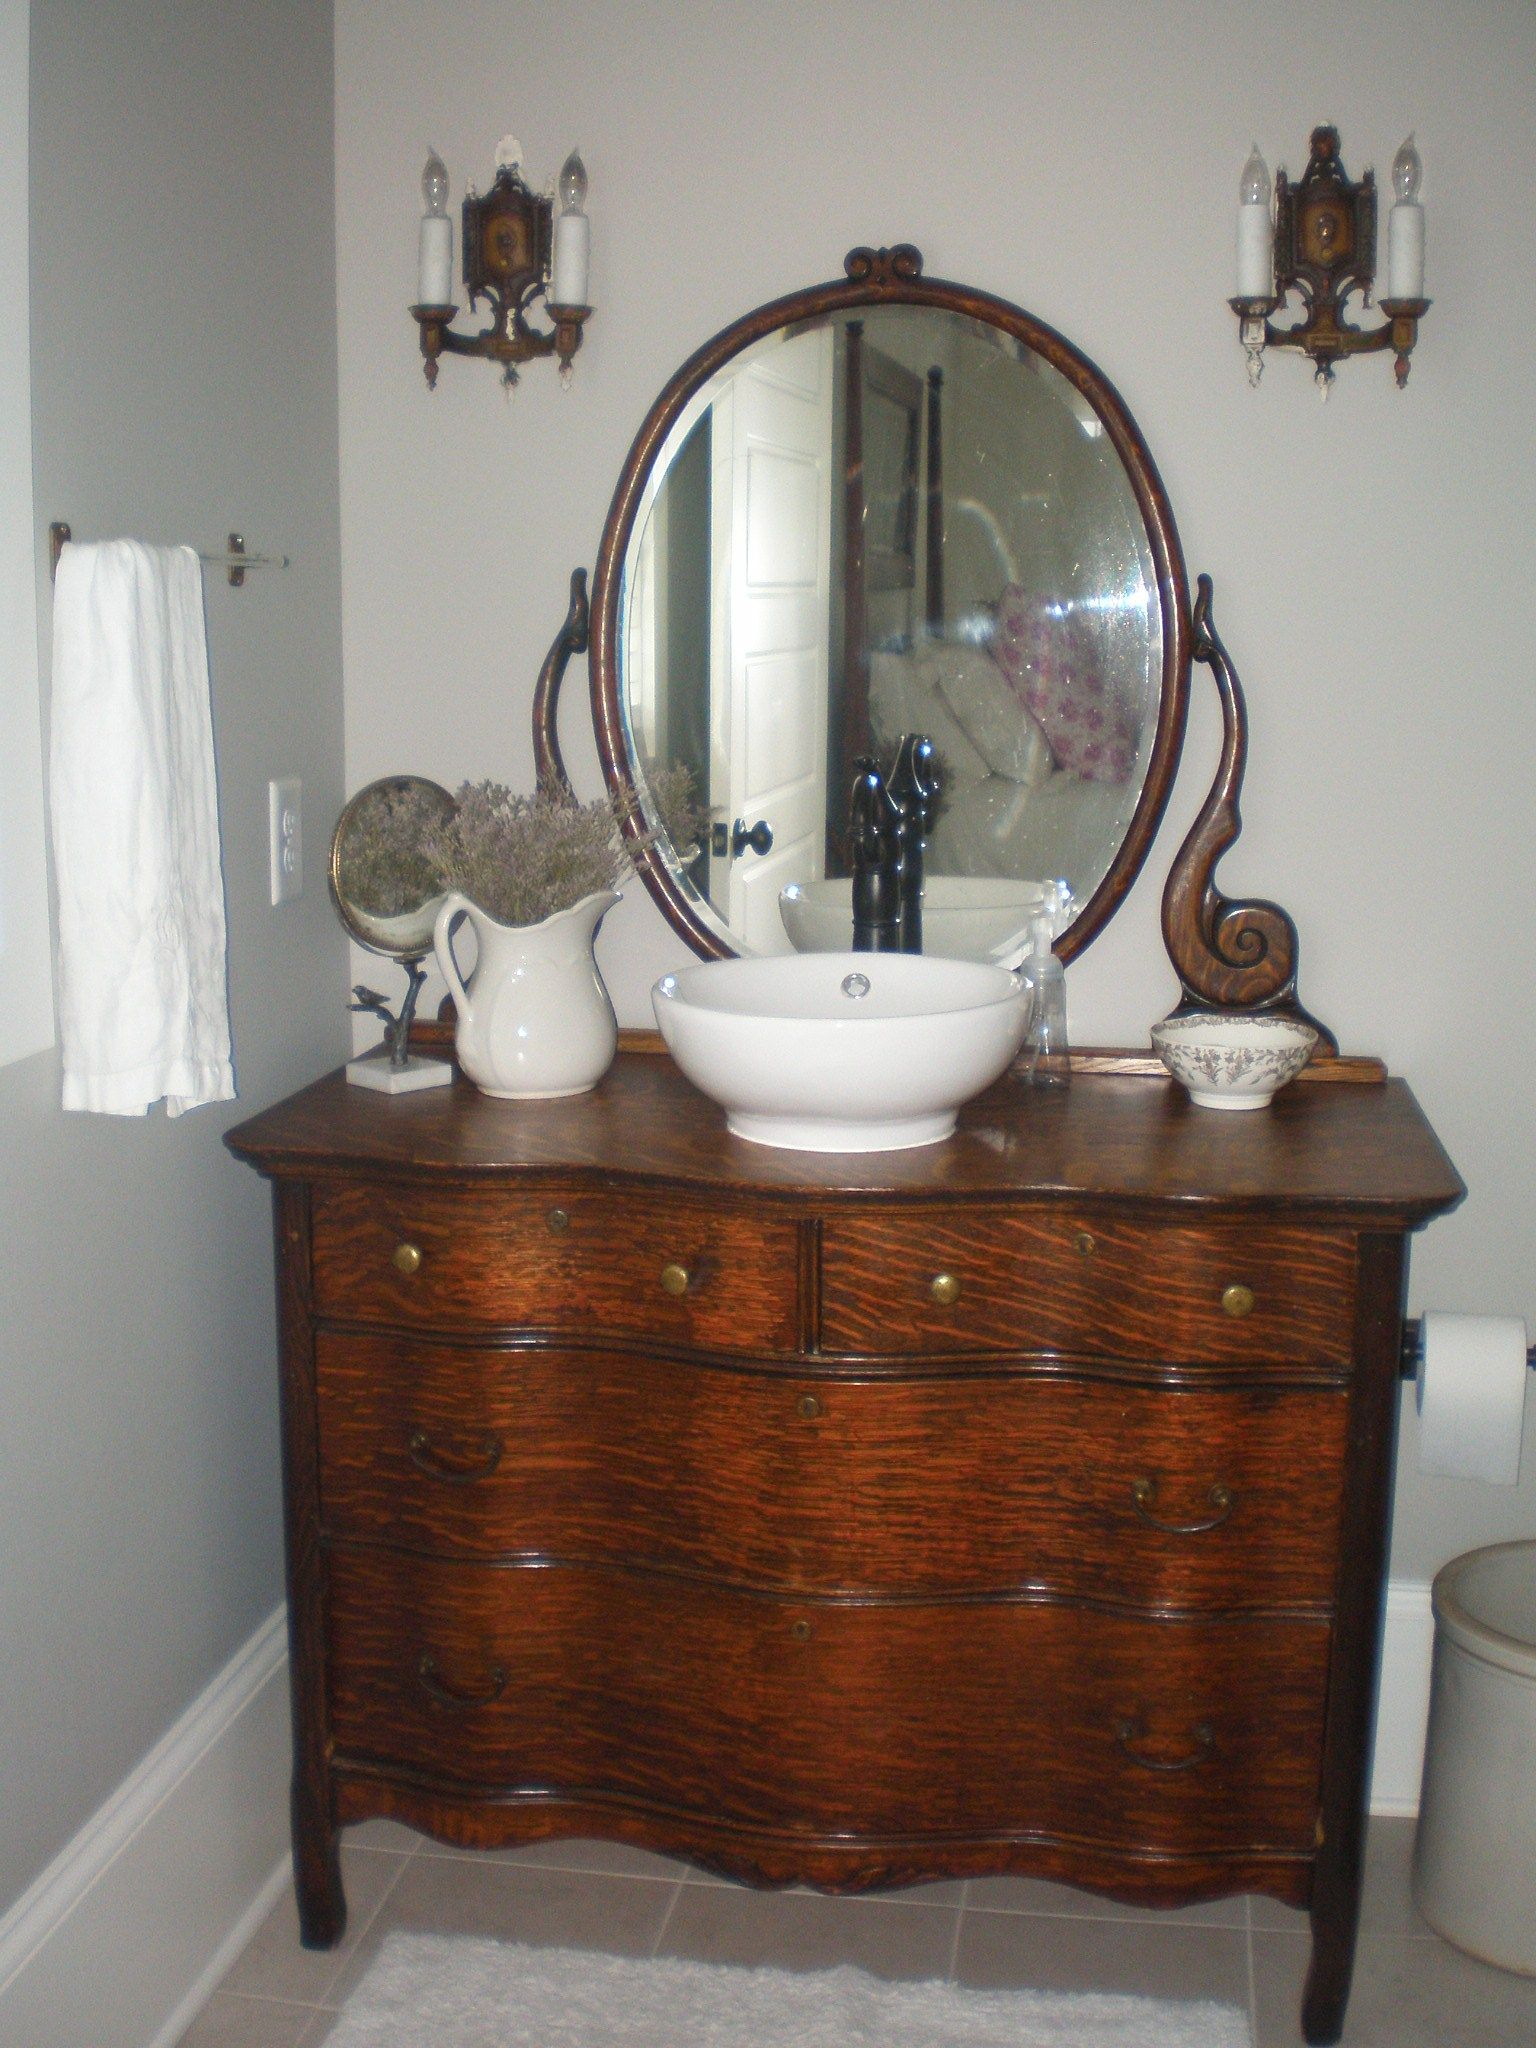 Antique Dresserbathroom sink Or this one for my cabin